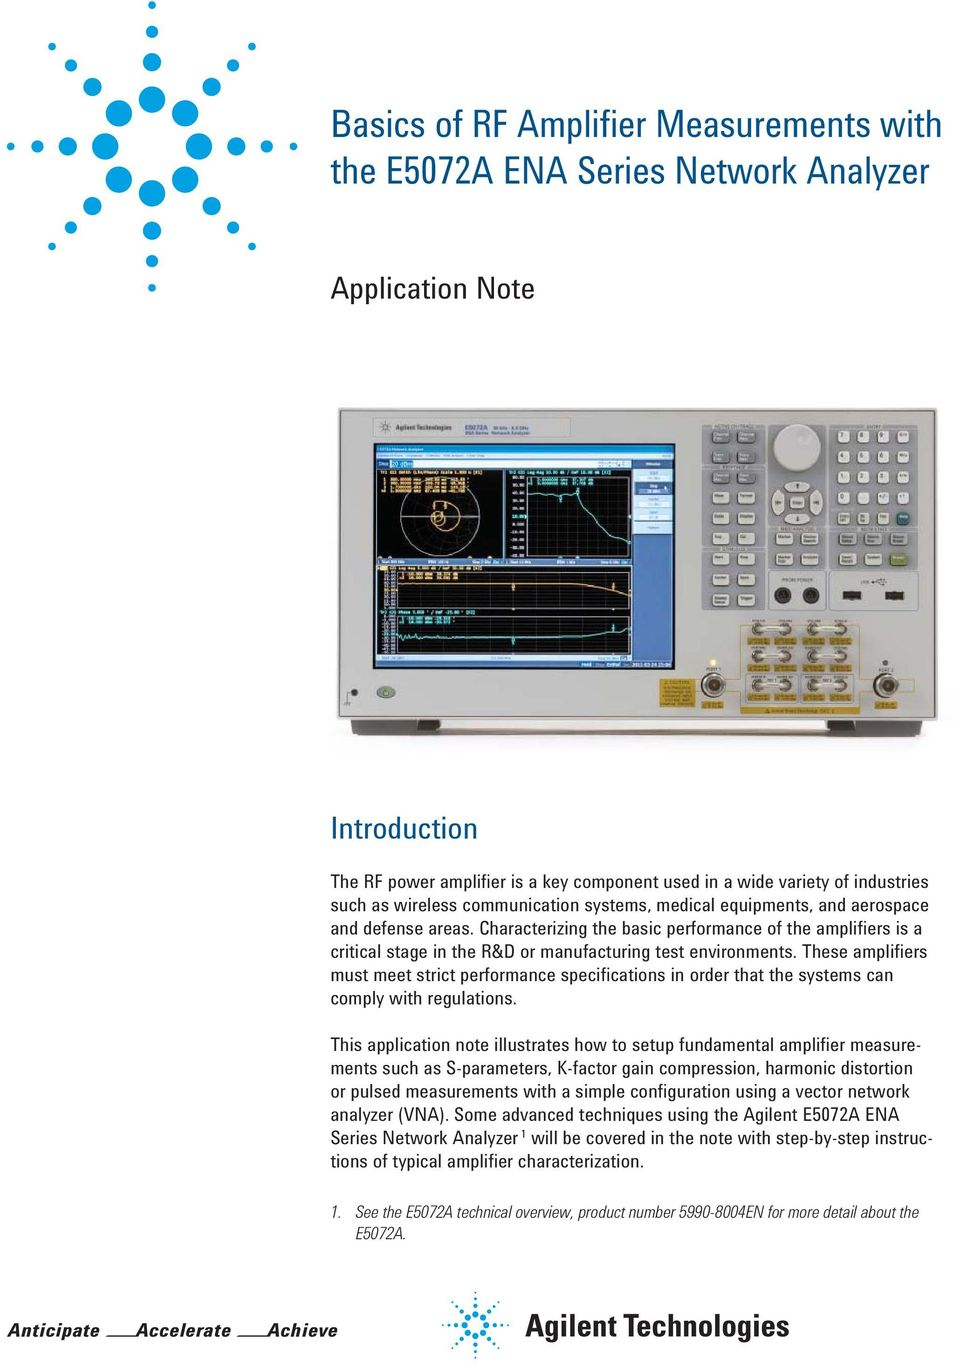 Characterizing the basic performance of the amplifiers is a critical stage in the R&D or manufacturing test environments.